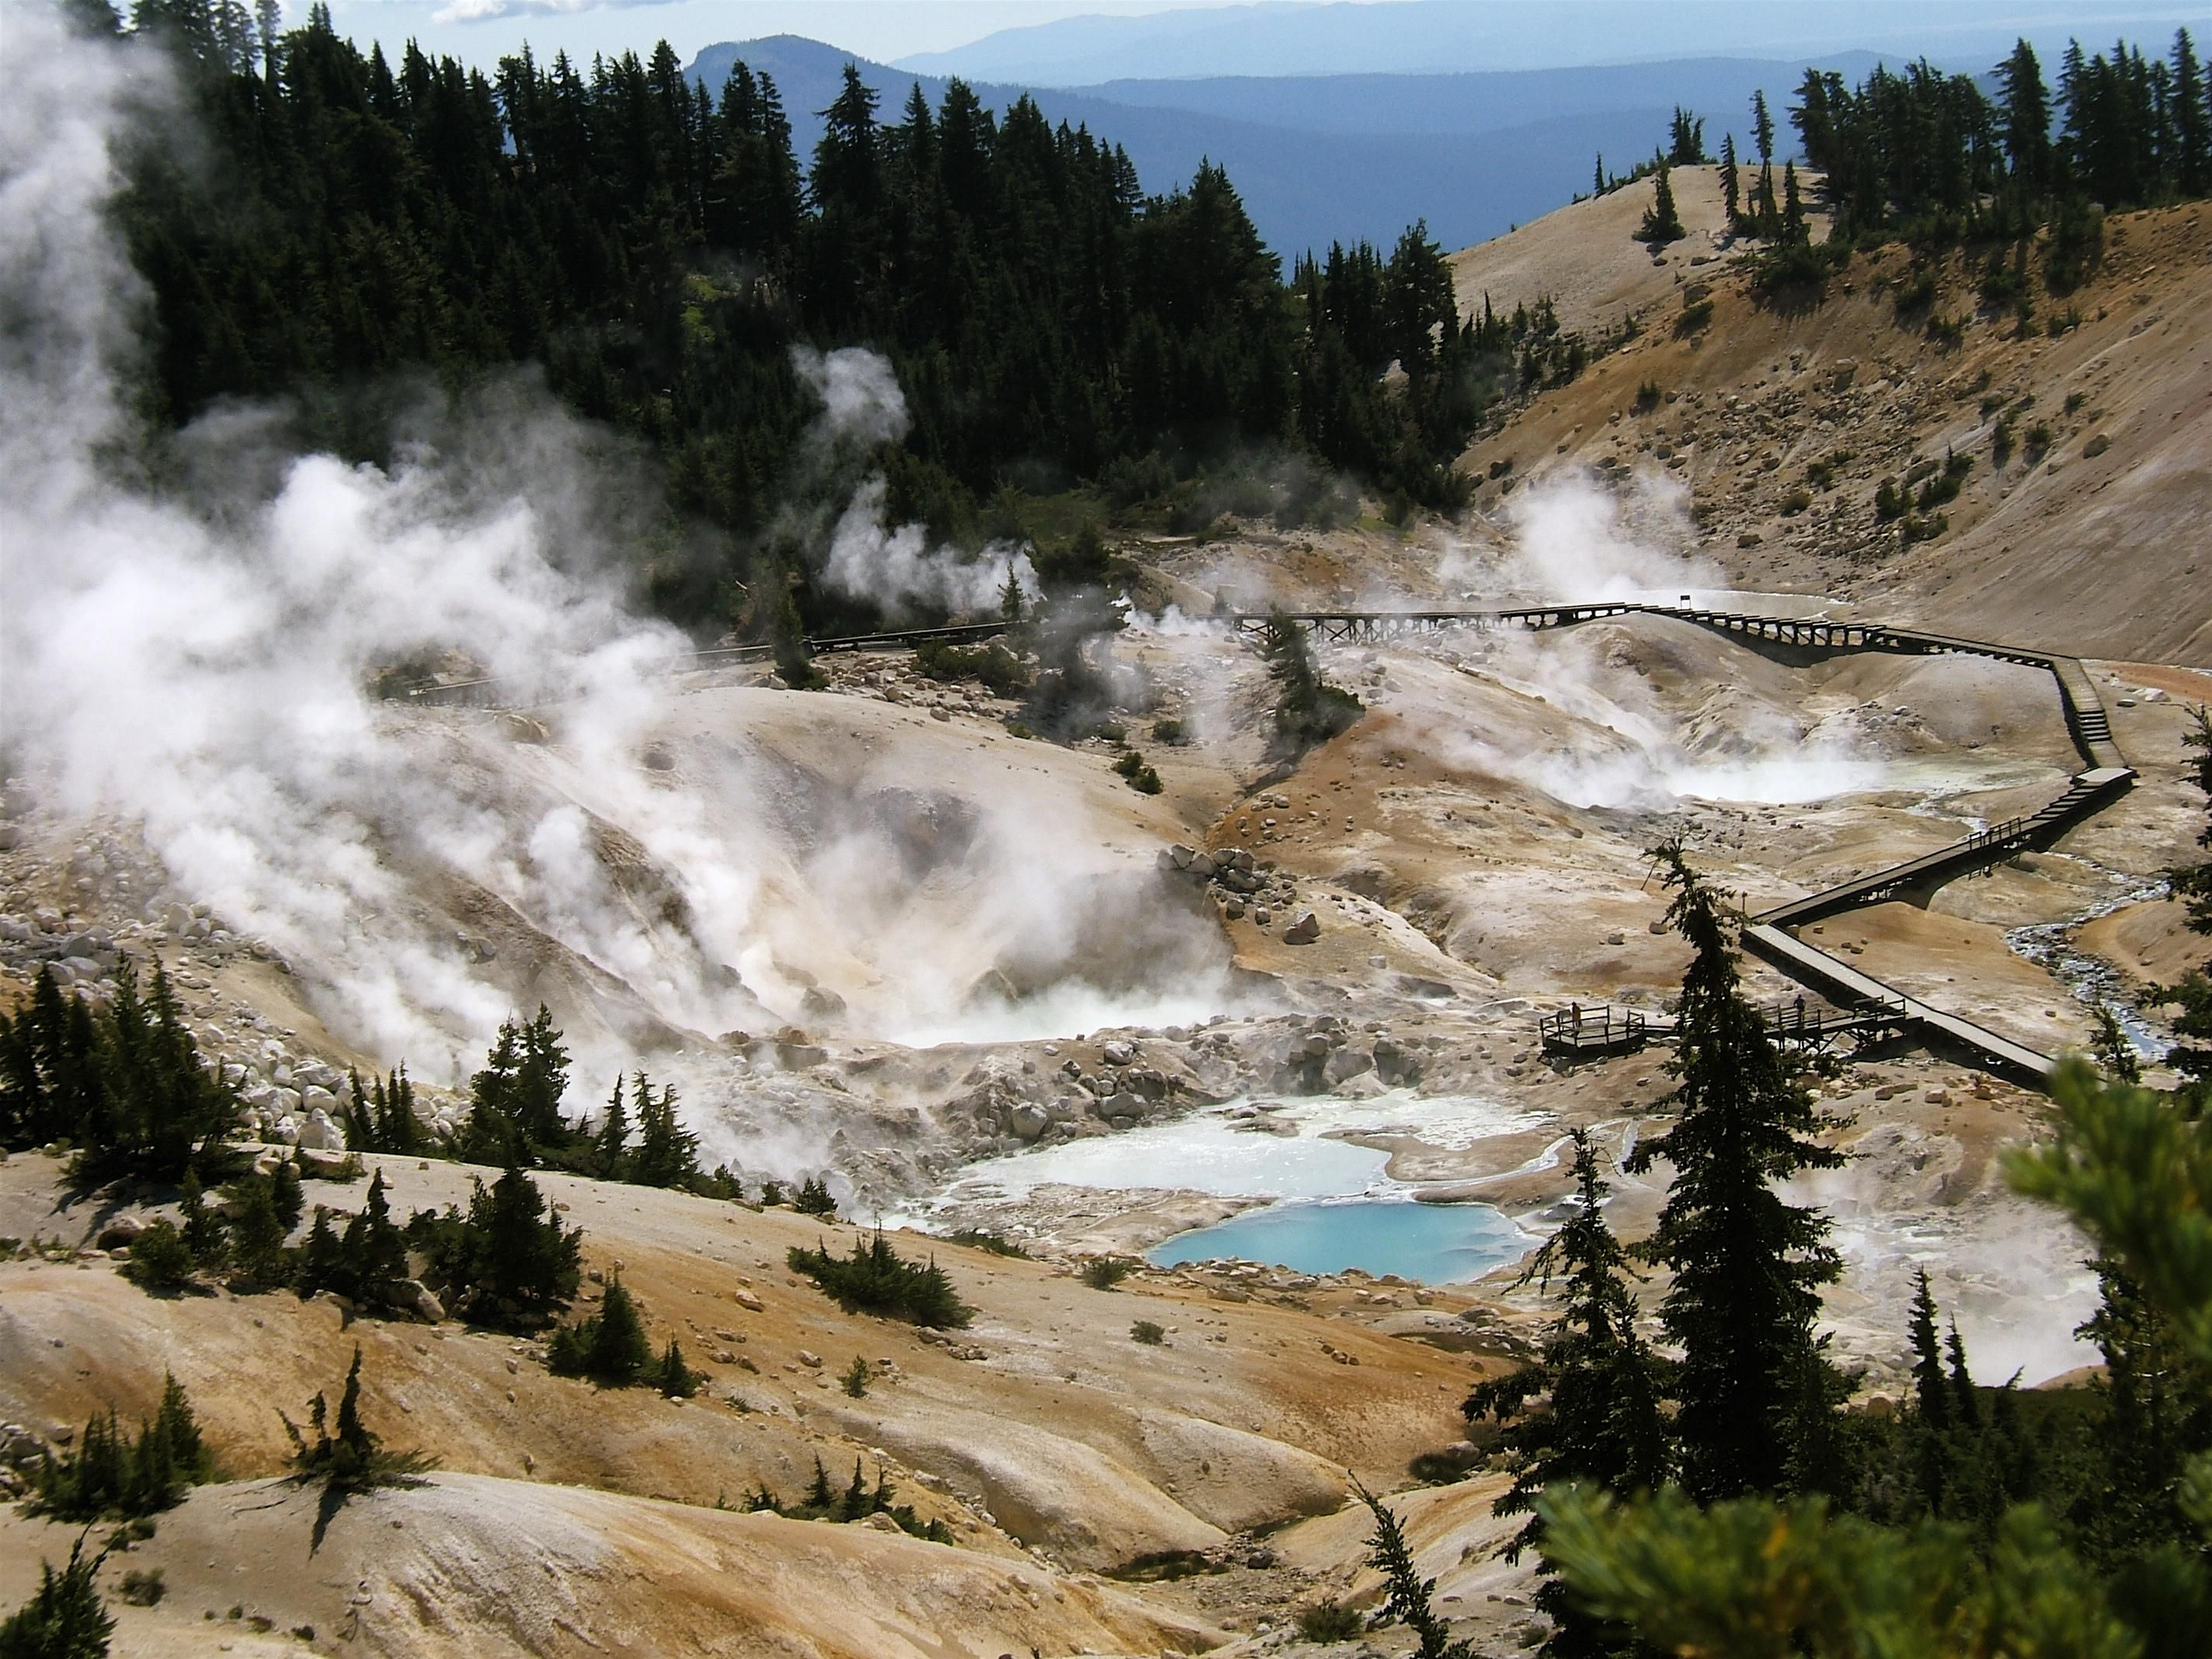 Coming Up: Lassen Volcanic National Park | Park, Volcano and Hiking